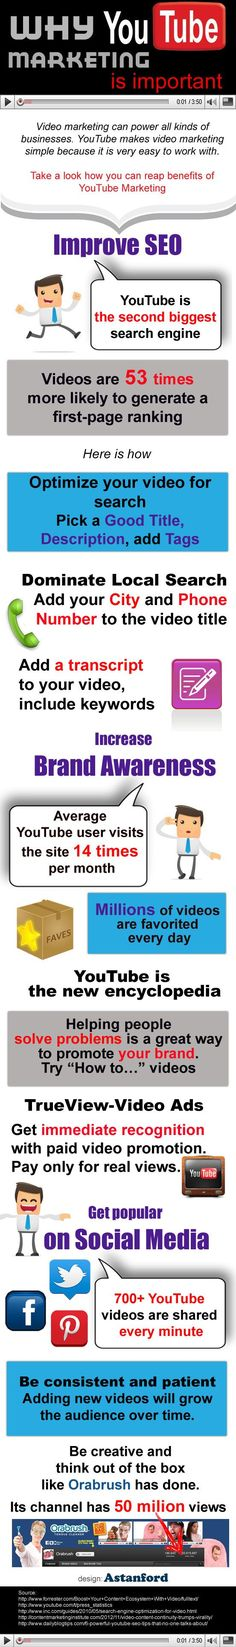 This infographic shows the benefits of using YouTube Marketing for your business.